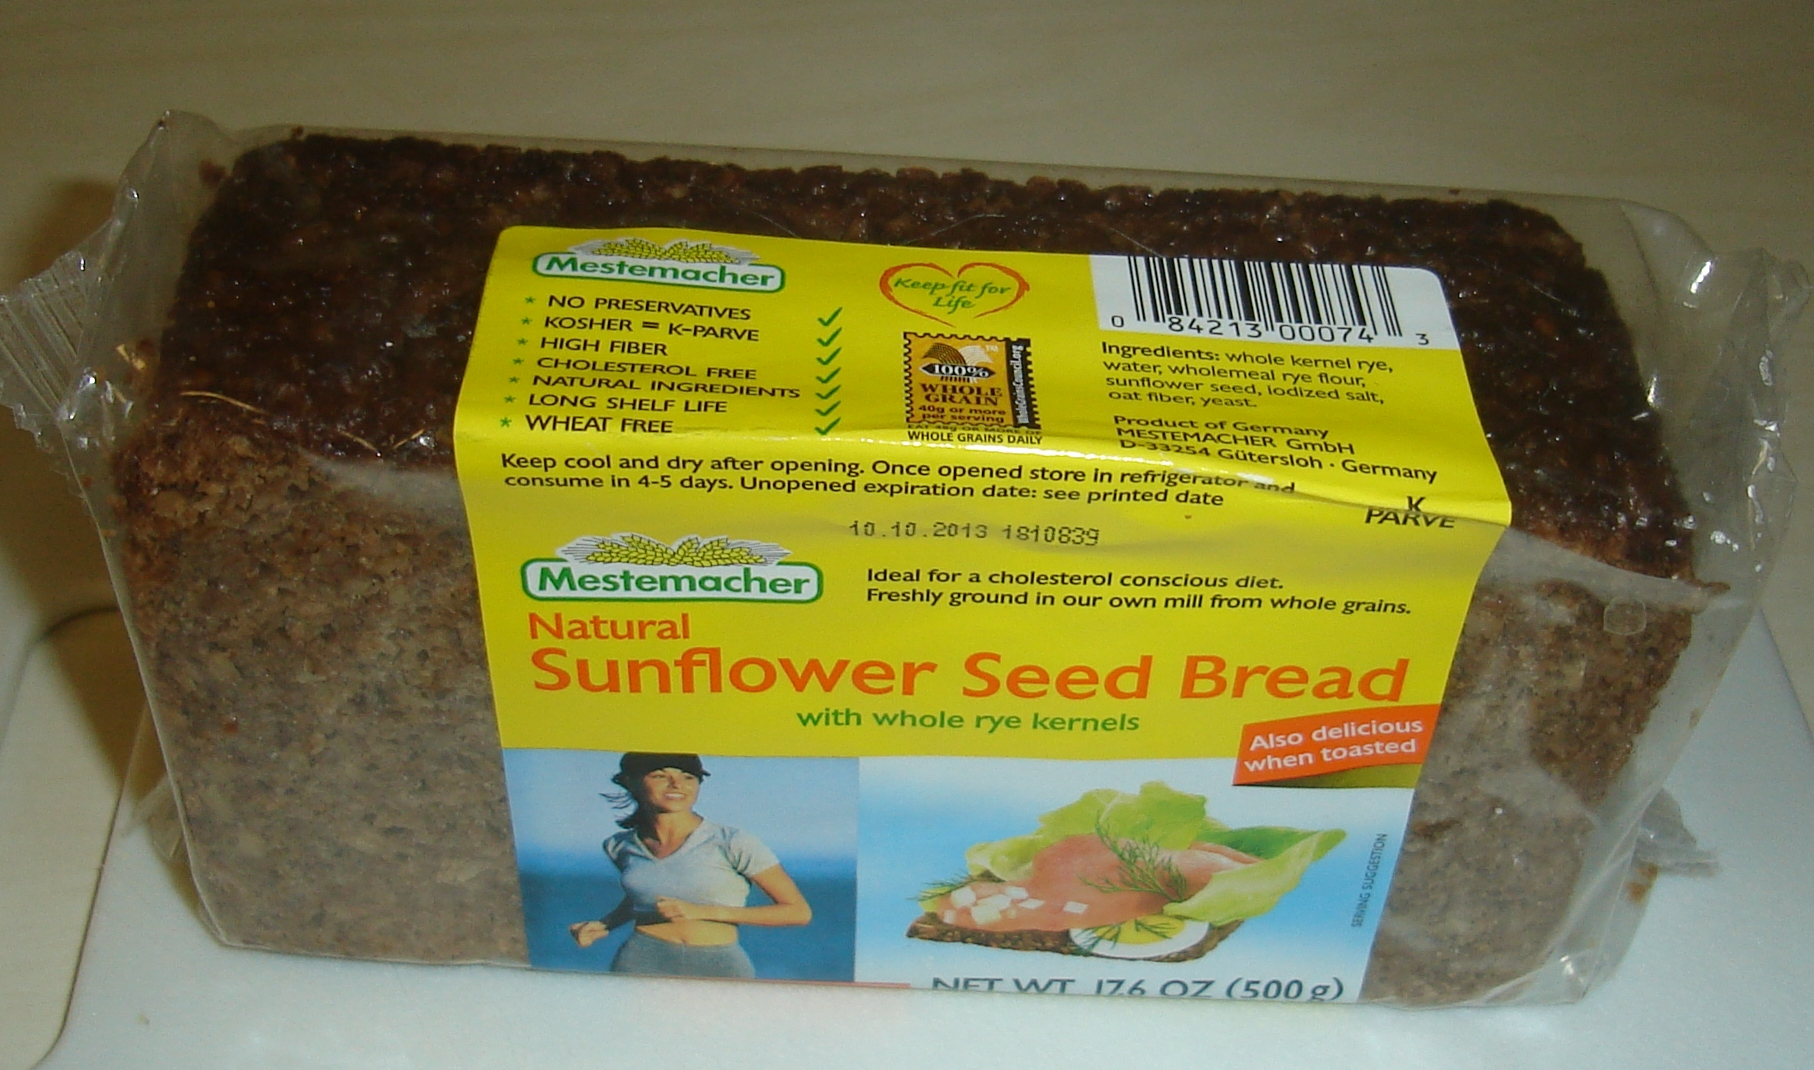 German sunflower seed bread.